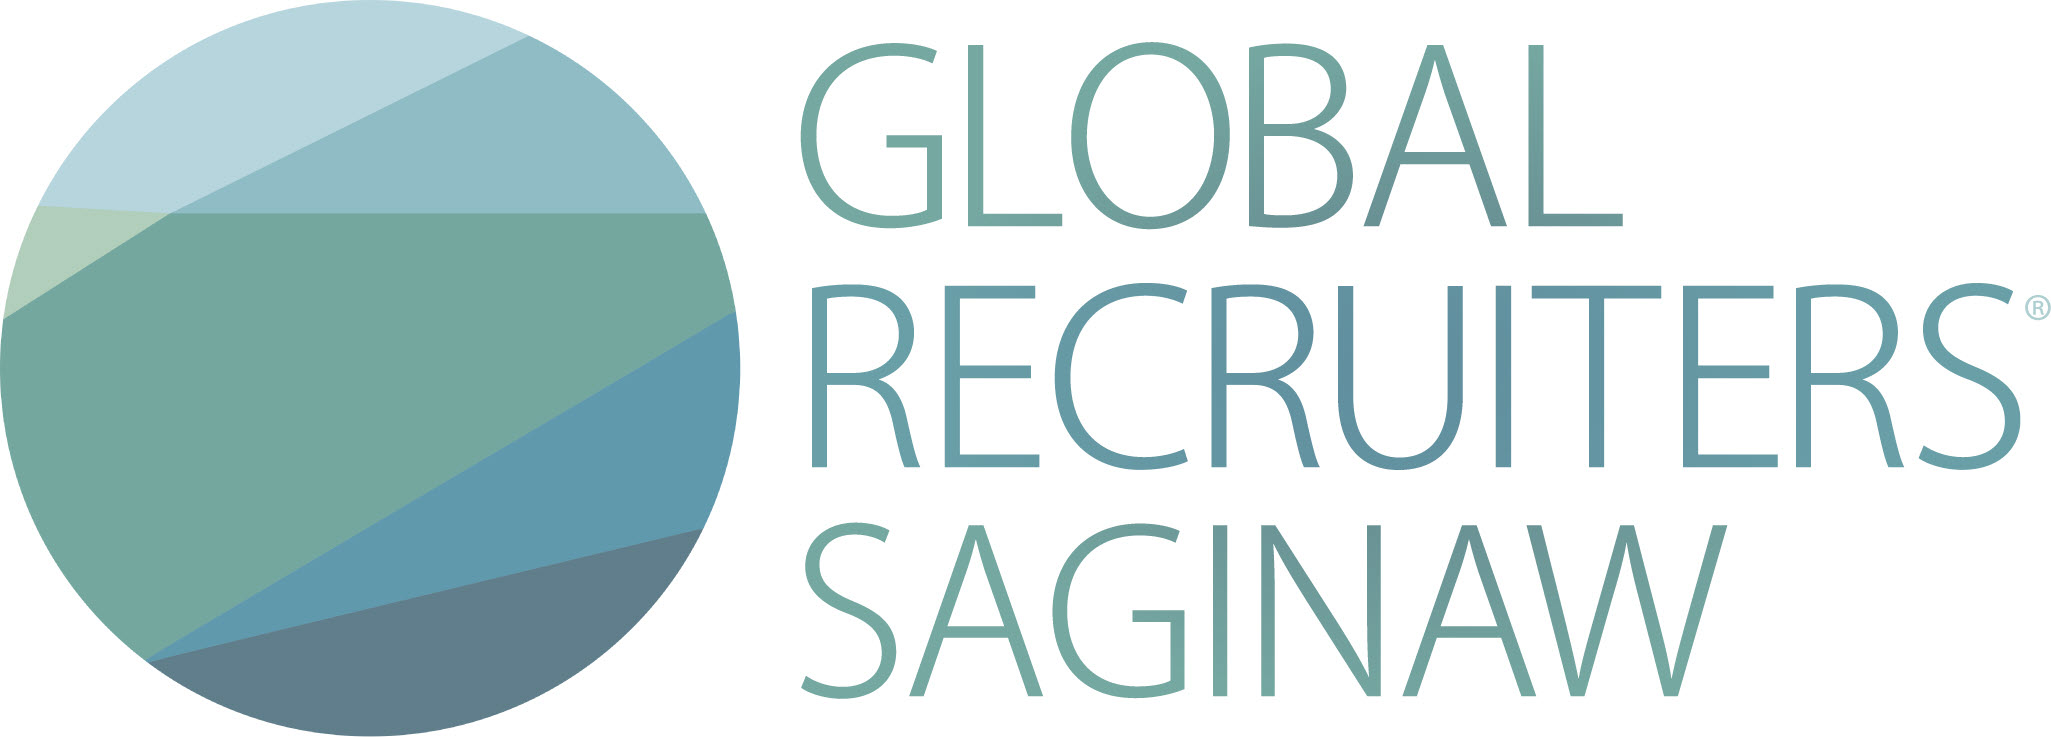 Global Recruiters of Saginaw